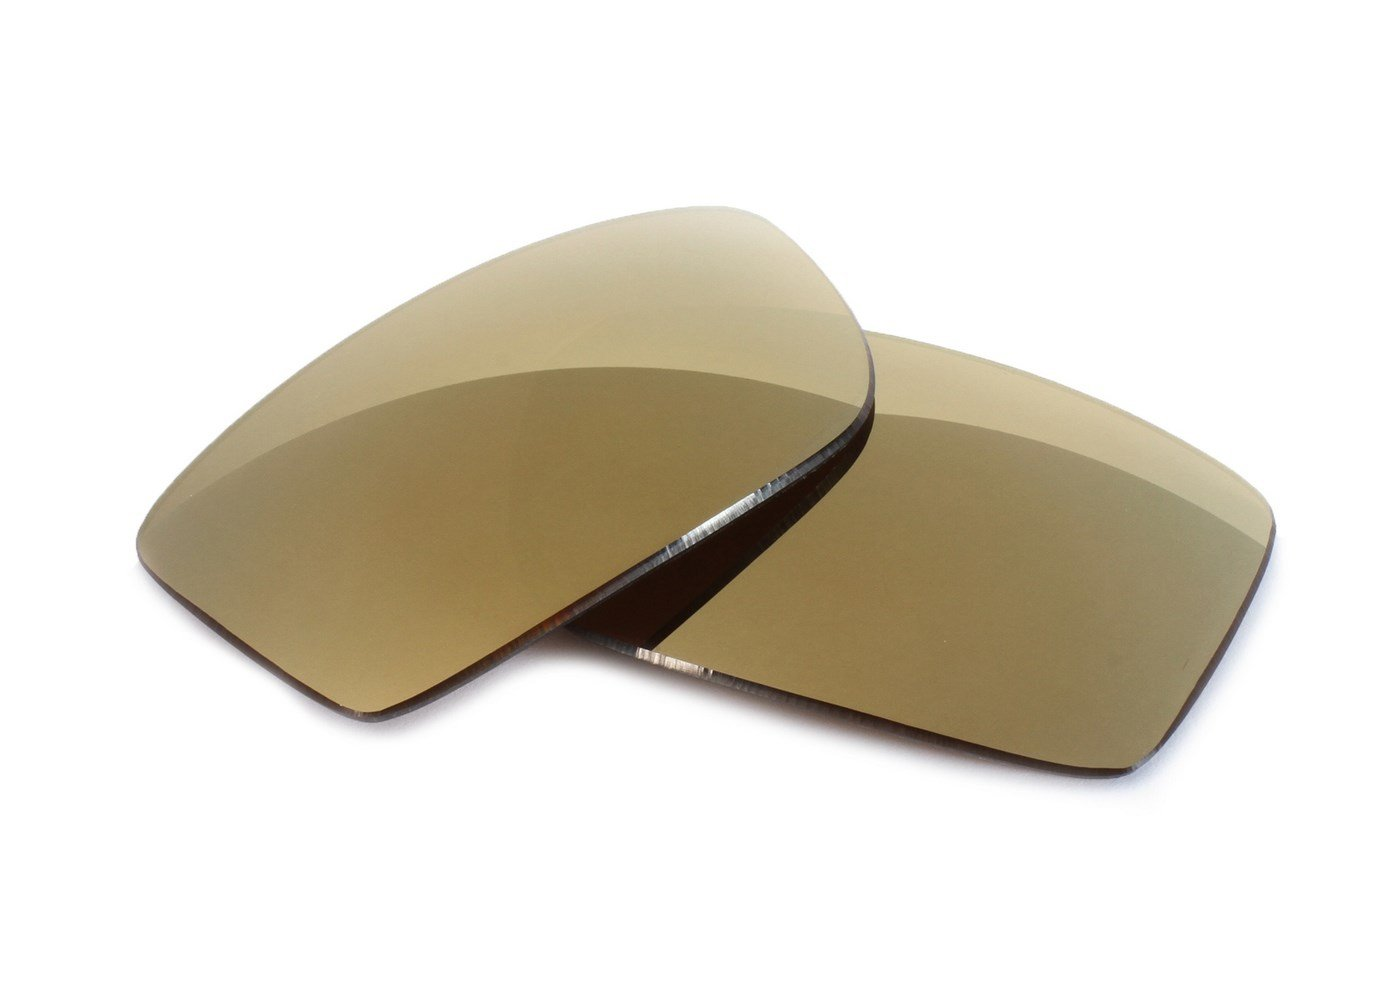 Fuse Lenses for Oakley Twoface XL (59mm) - Bronze Mirror Polarized by Fuse Lenses